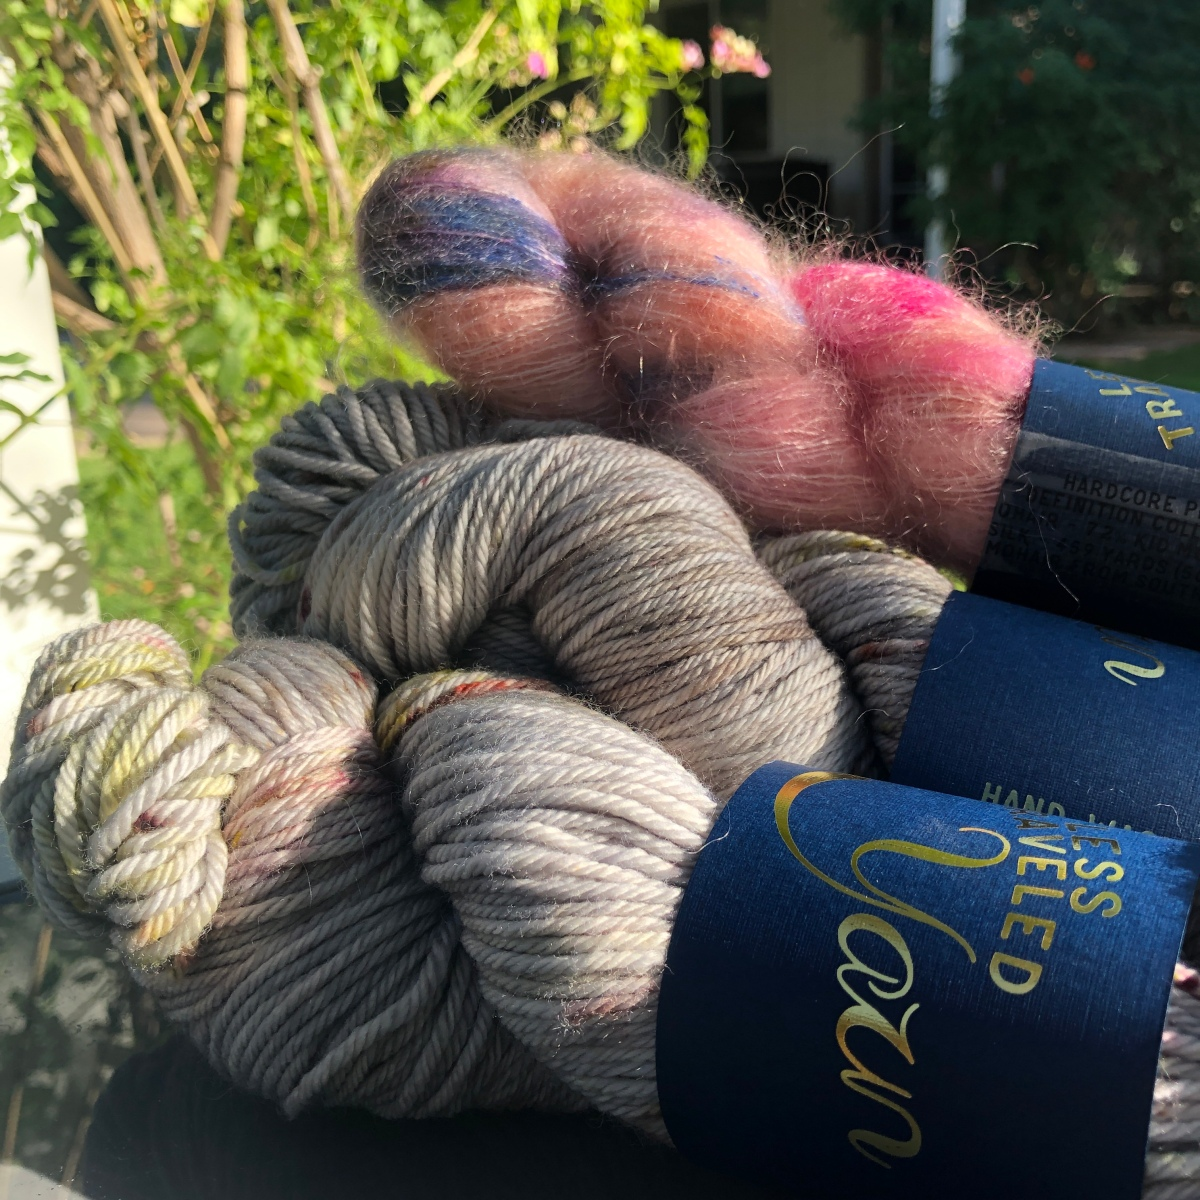 Three skeins of Less Traveled Yarn in smooth gray and fuzzy pink against a backdrop of vines